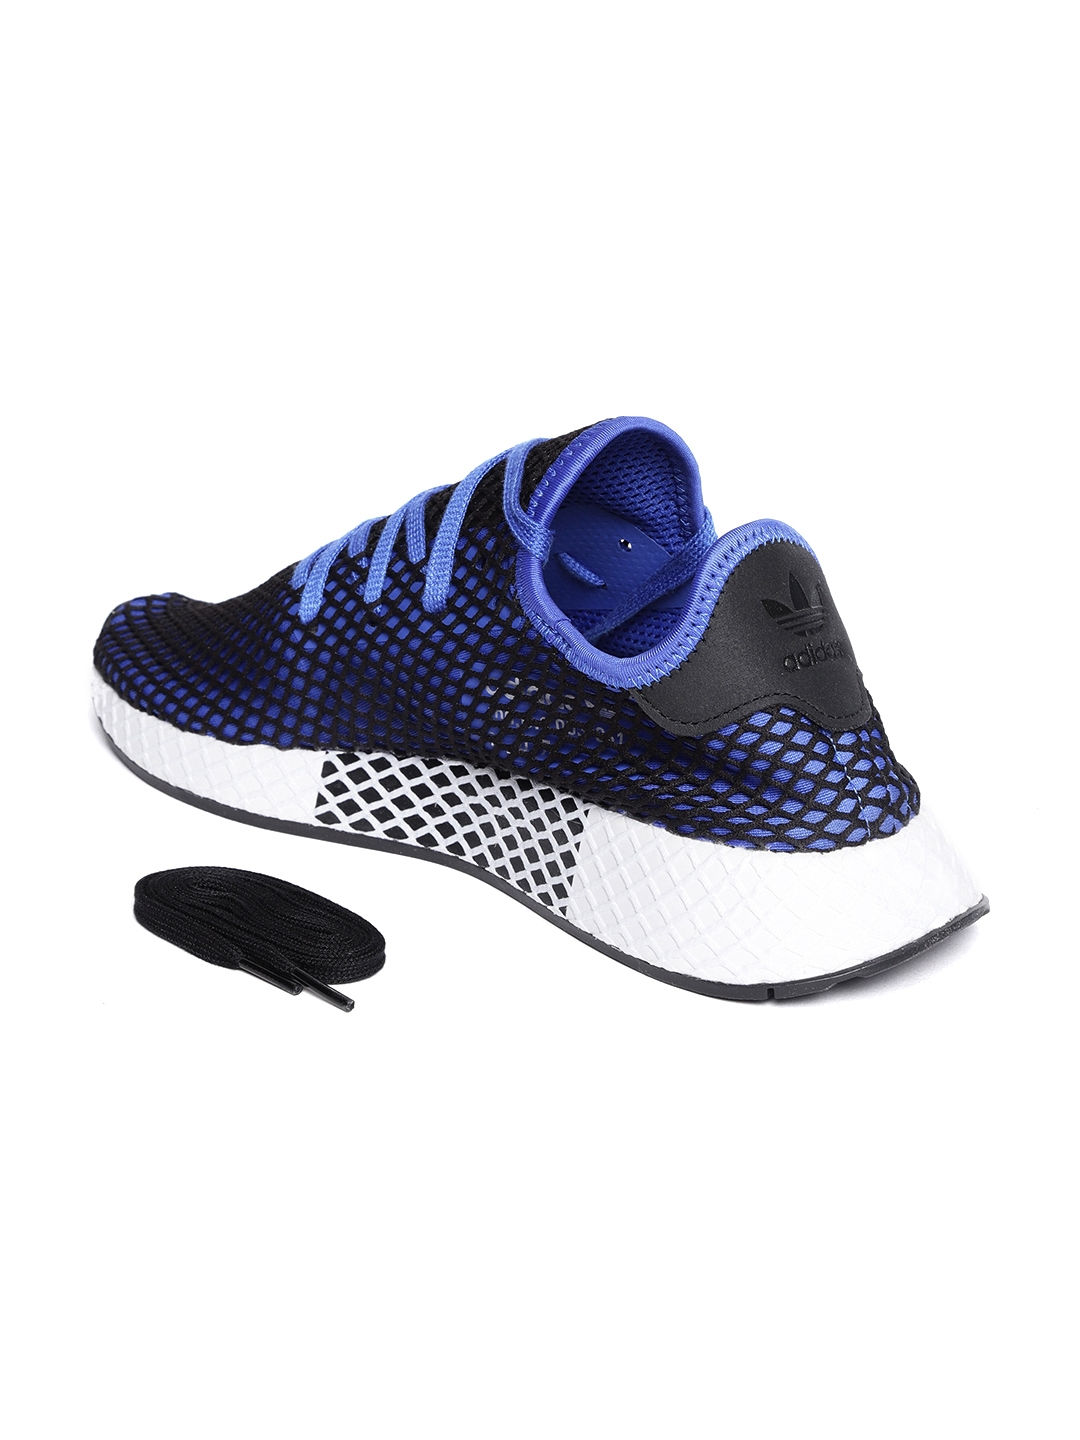 the latest 7ada0 bace2 Adidas Originals Men Blue   Black DEERUPT Runner Sneakers